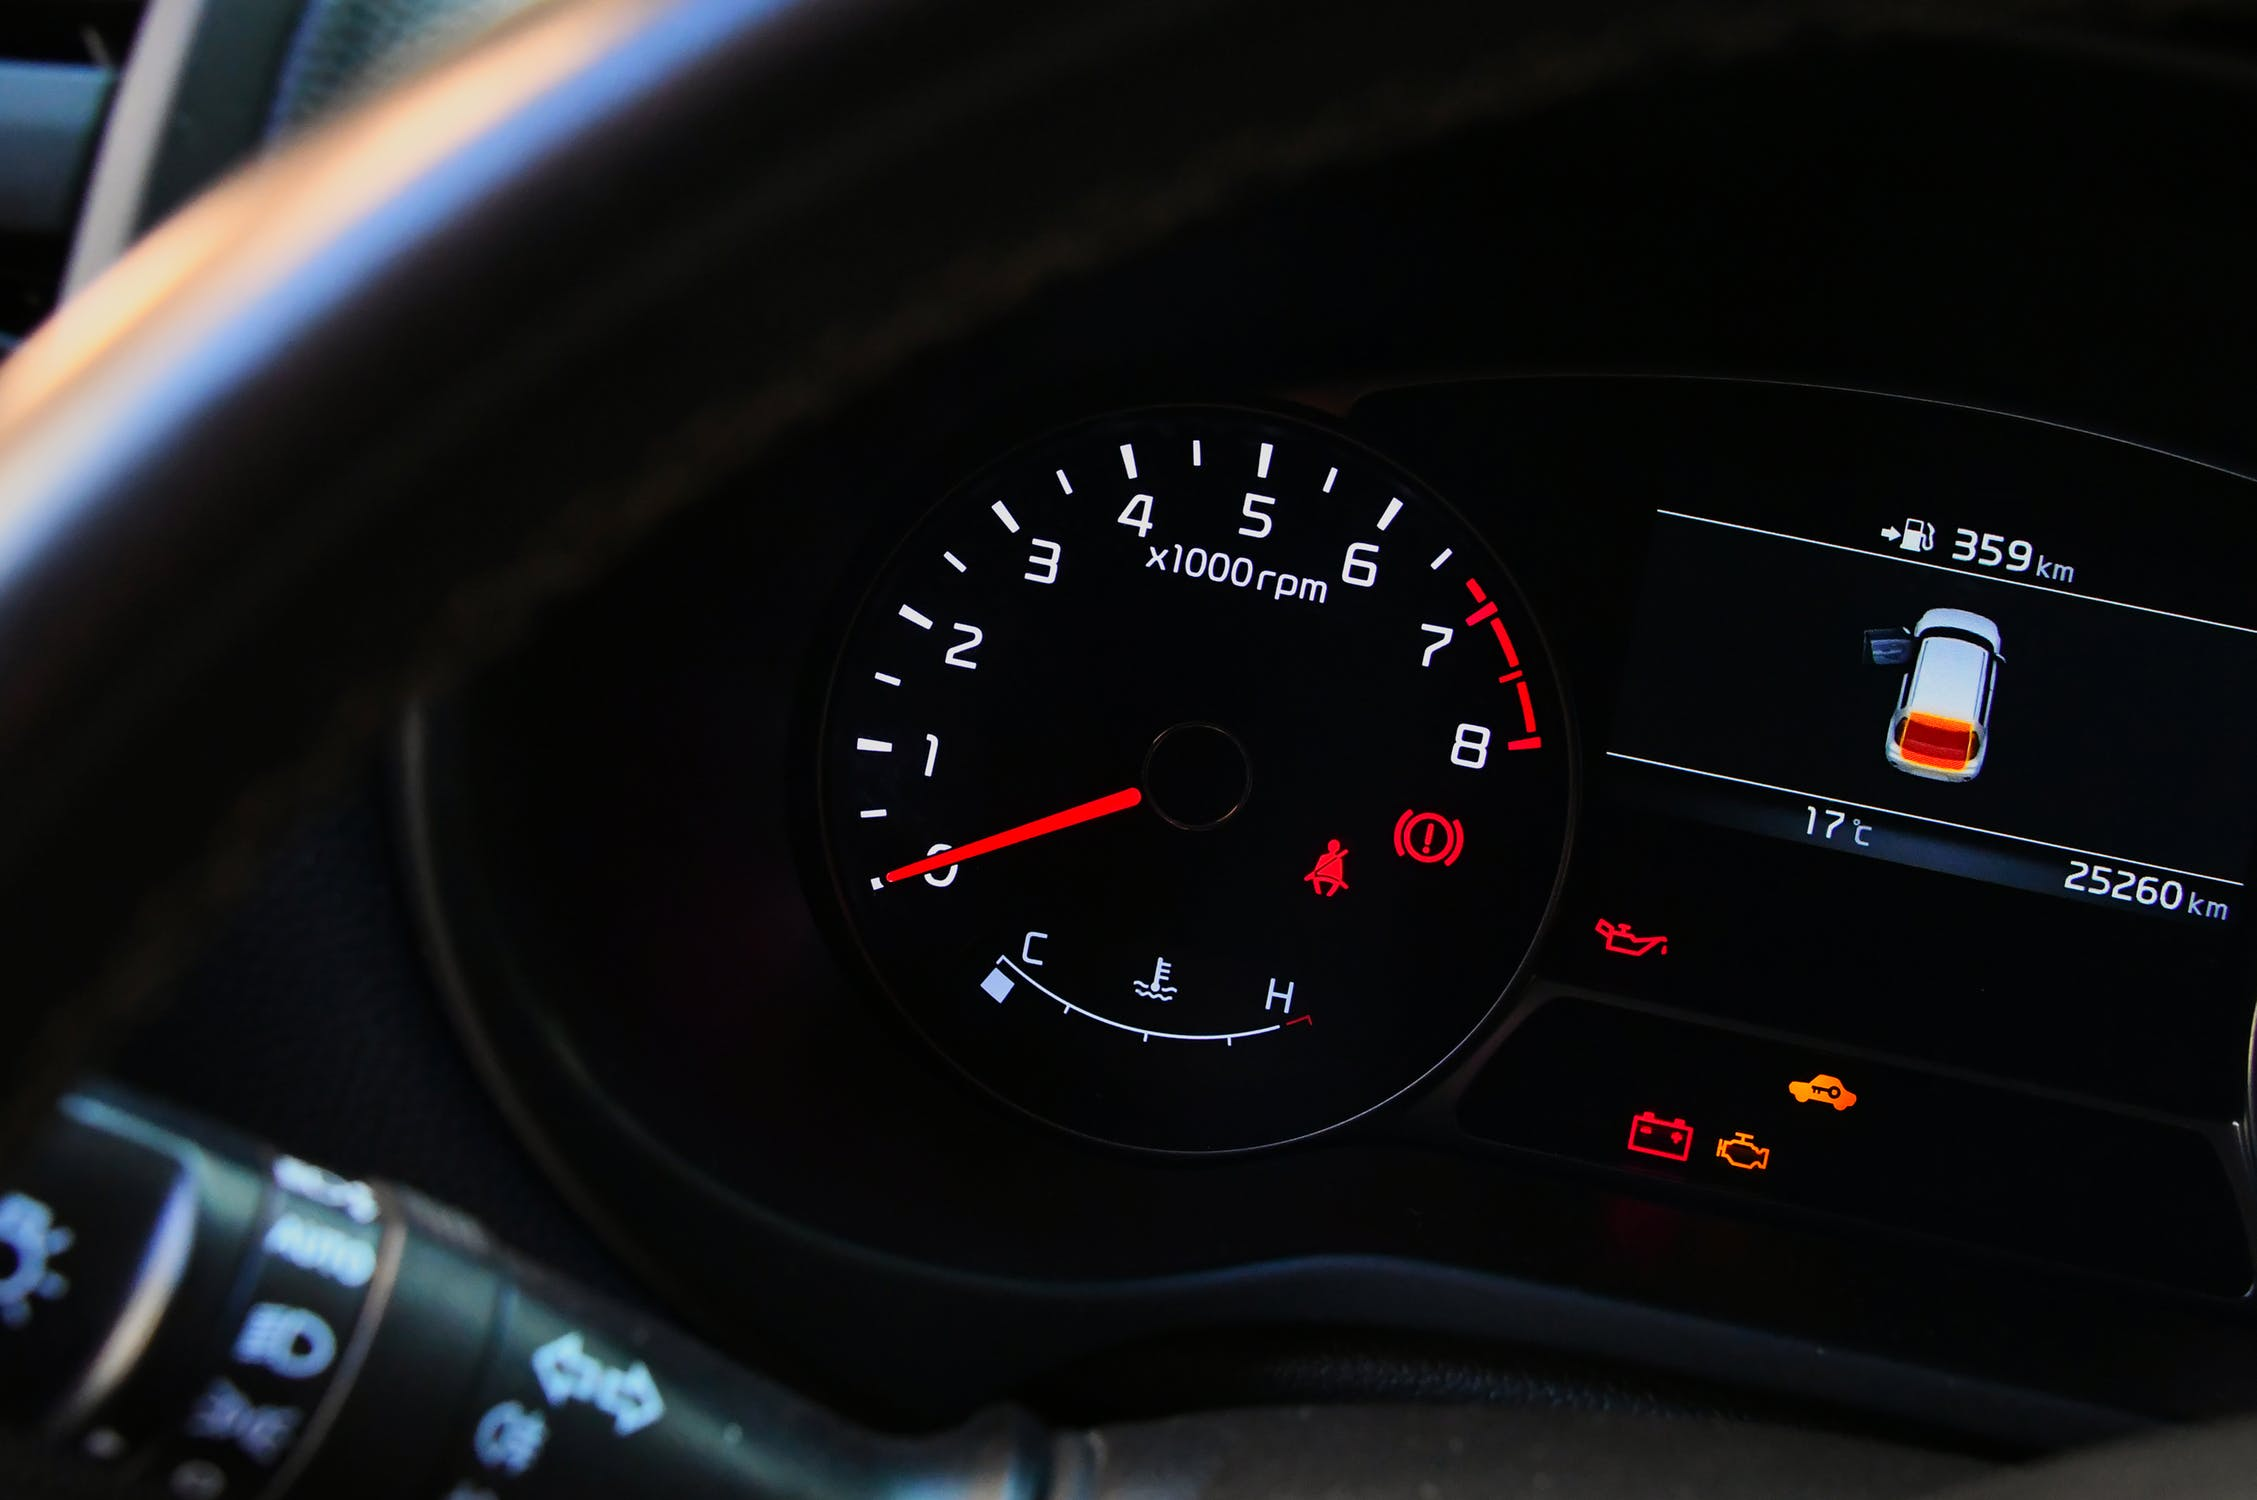 How to Reset The Check Engine Light